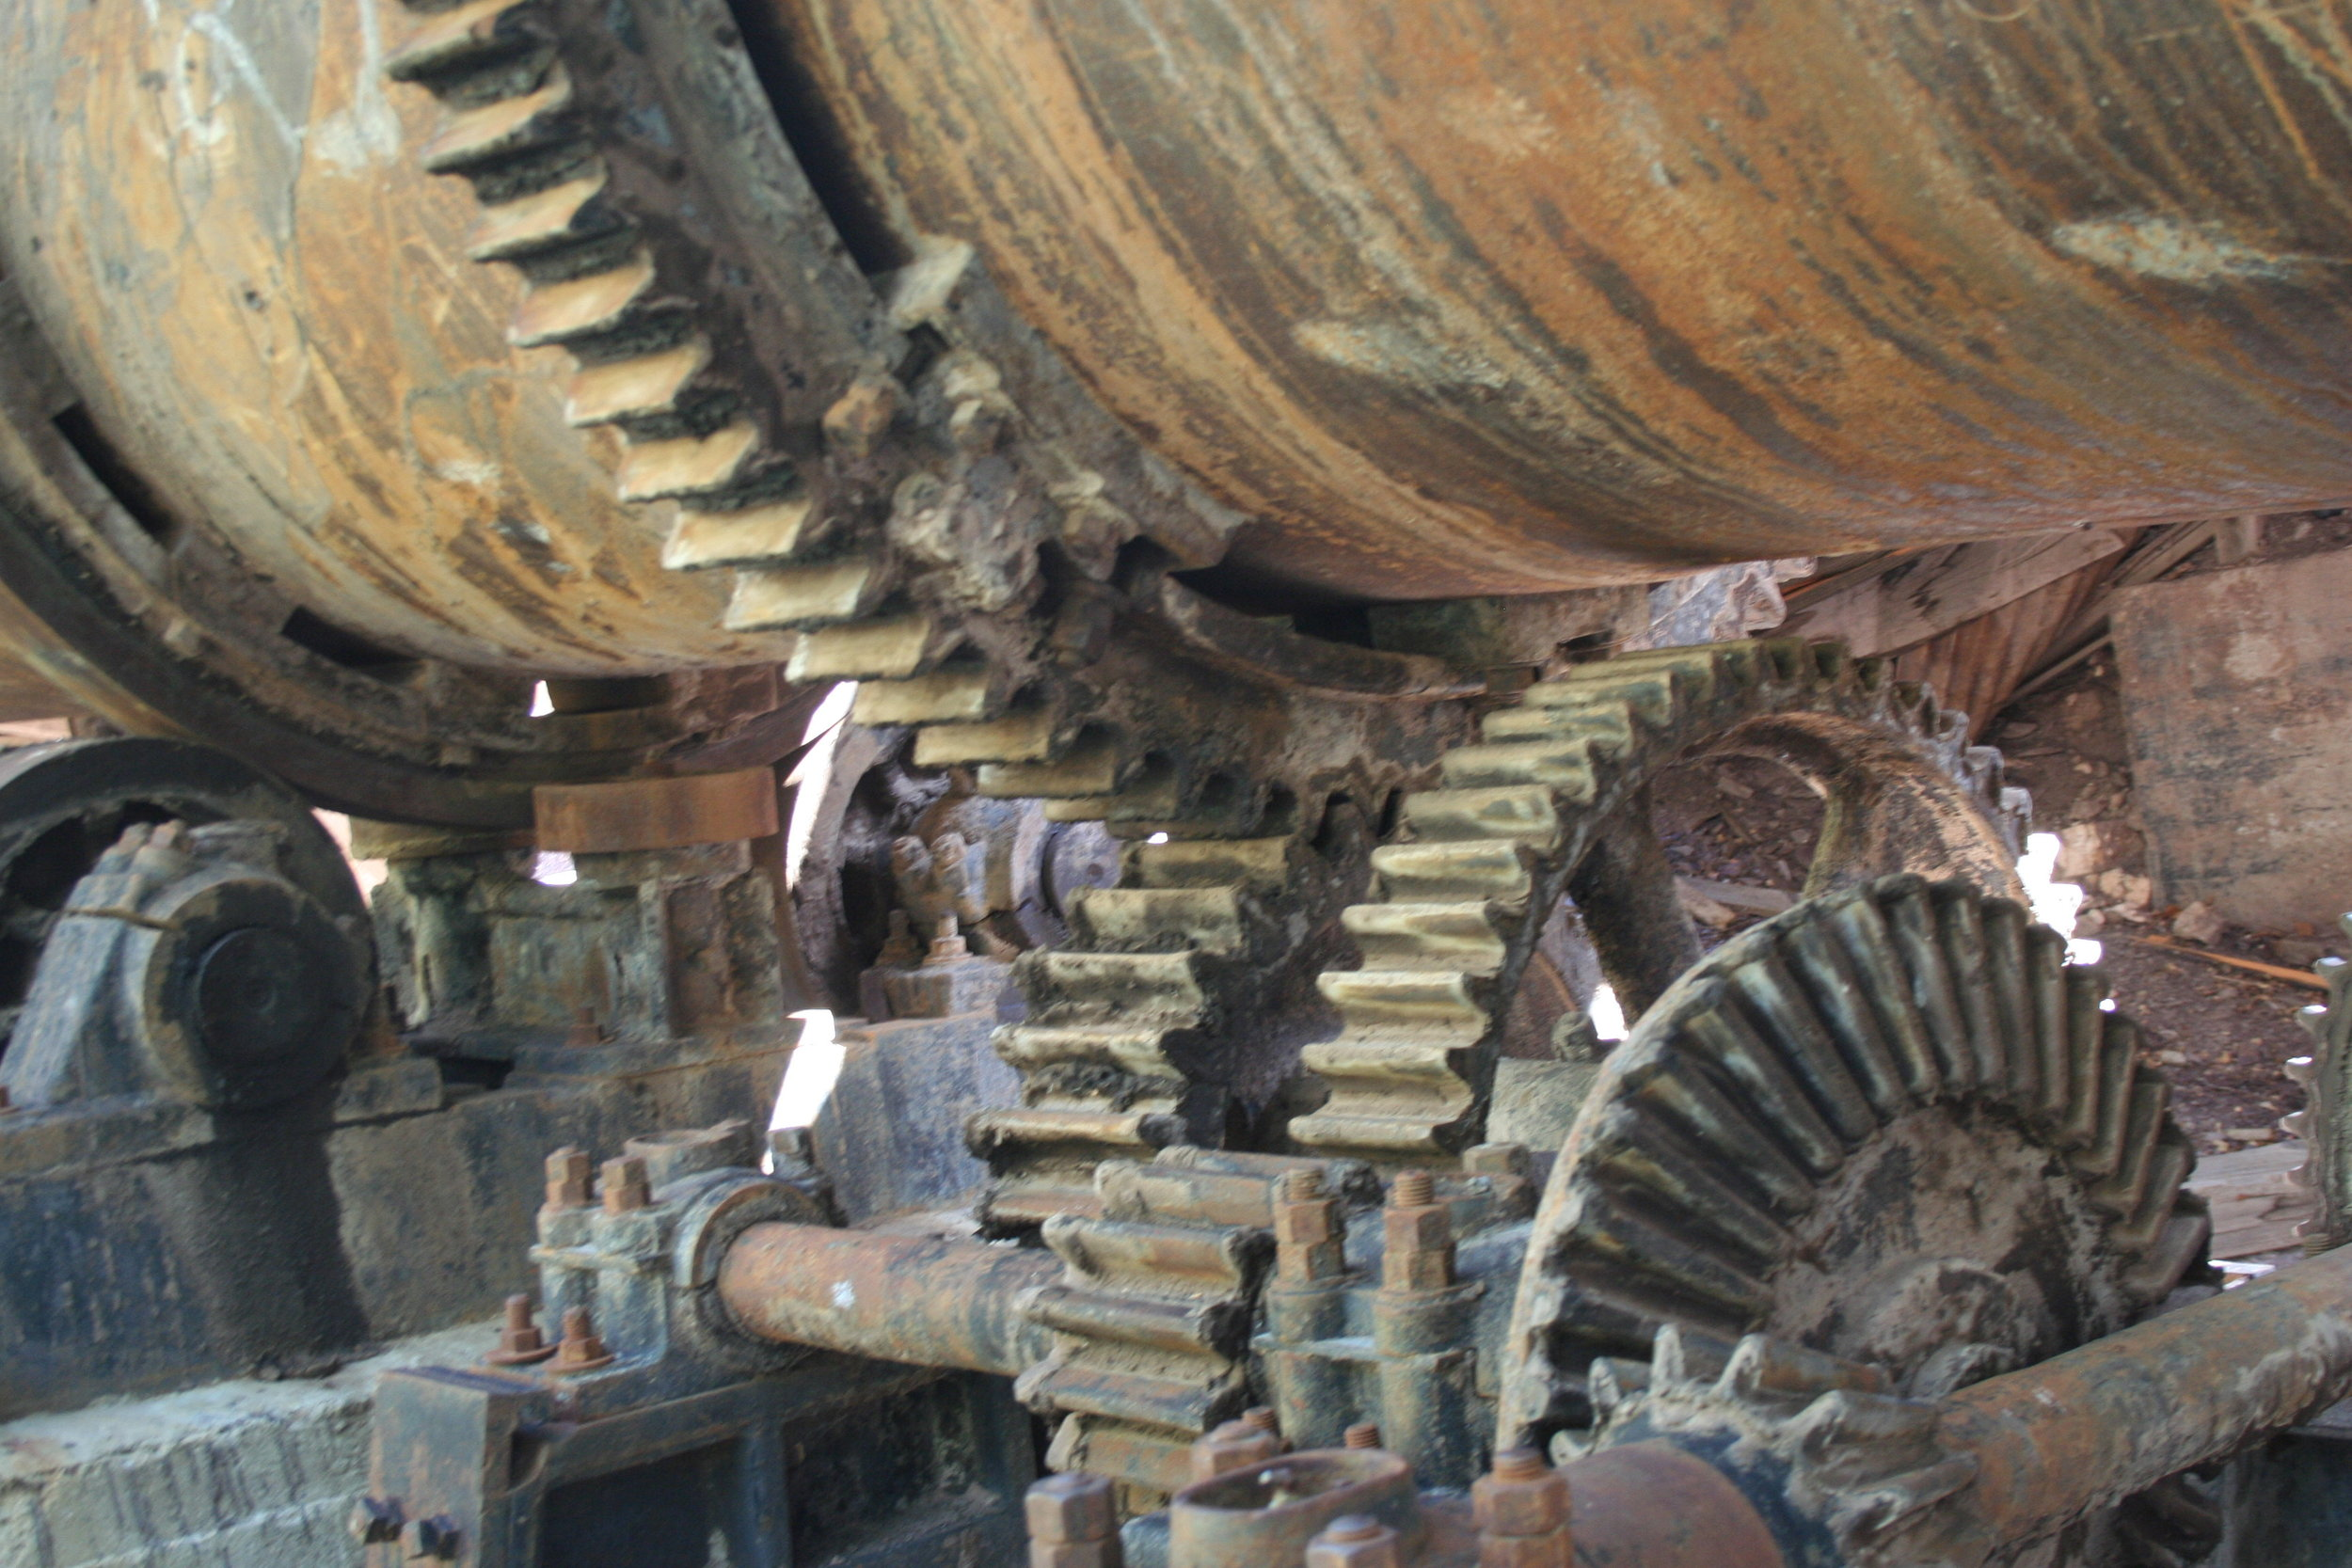 Some of the gears used to turn the tumbler at Sunflower mine